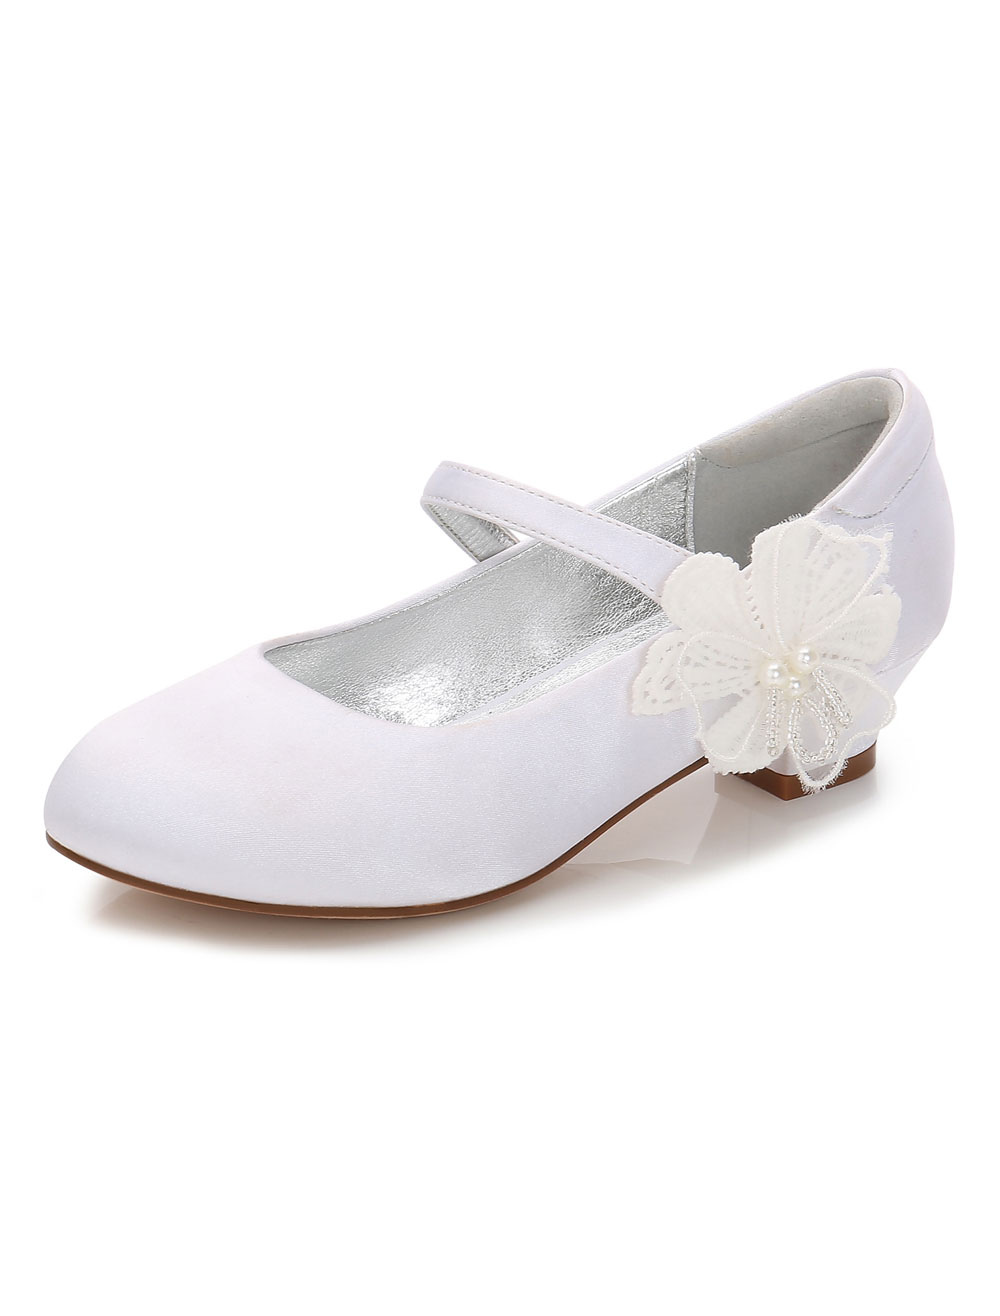 White Flower Girl Shoes Satin Round Toe Flowers Detail Party Shoes